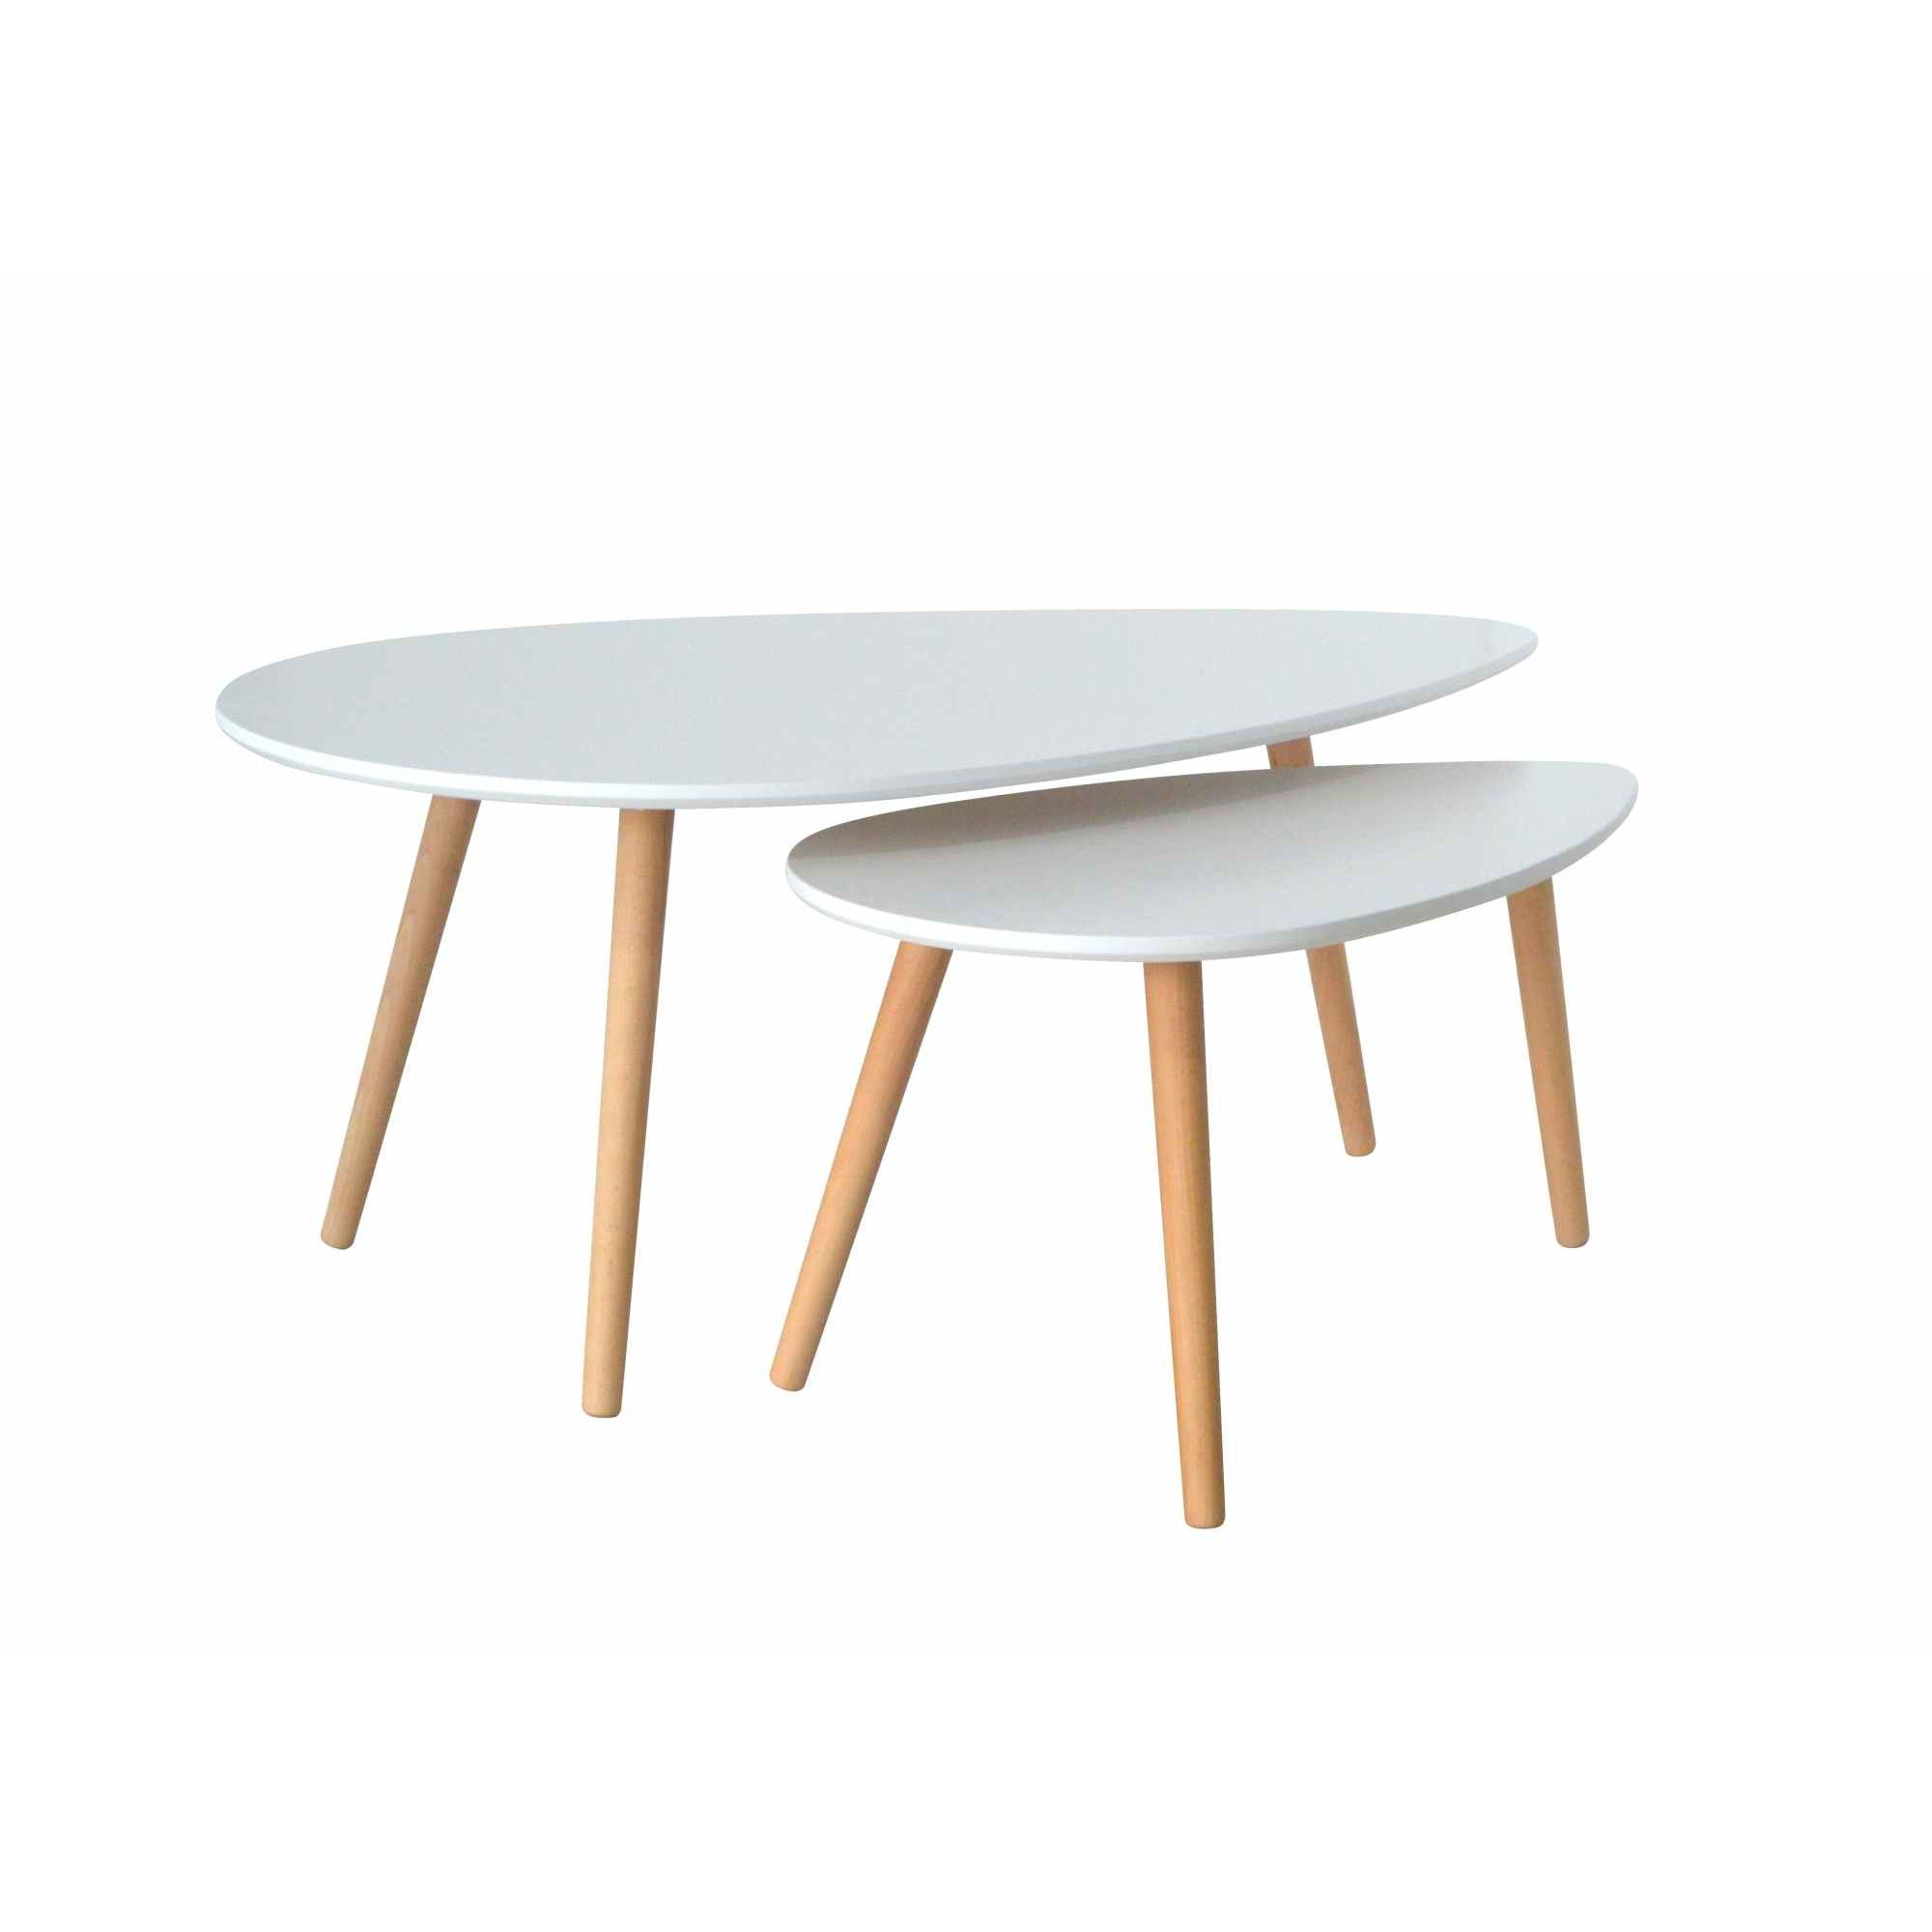 Deco in paris table basse scandinave blanc avesta avesta for Table basse scandinave blanche